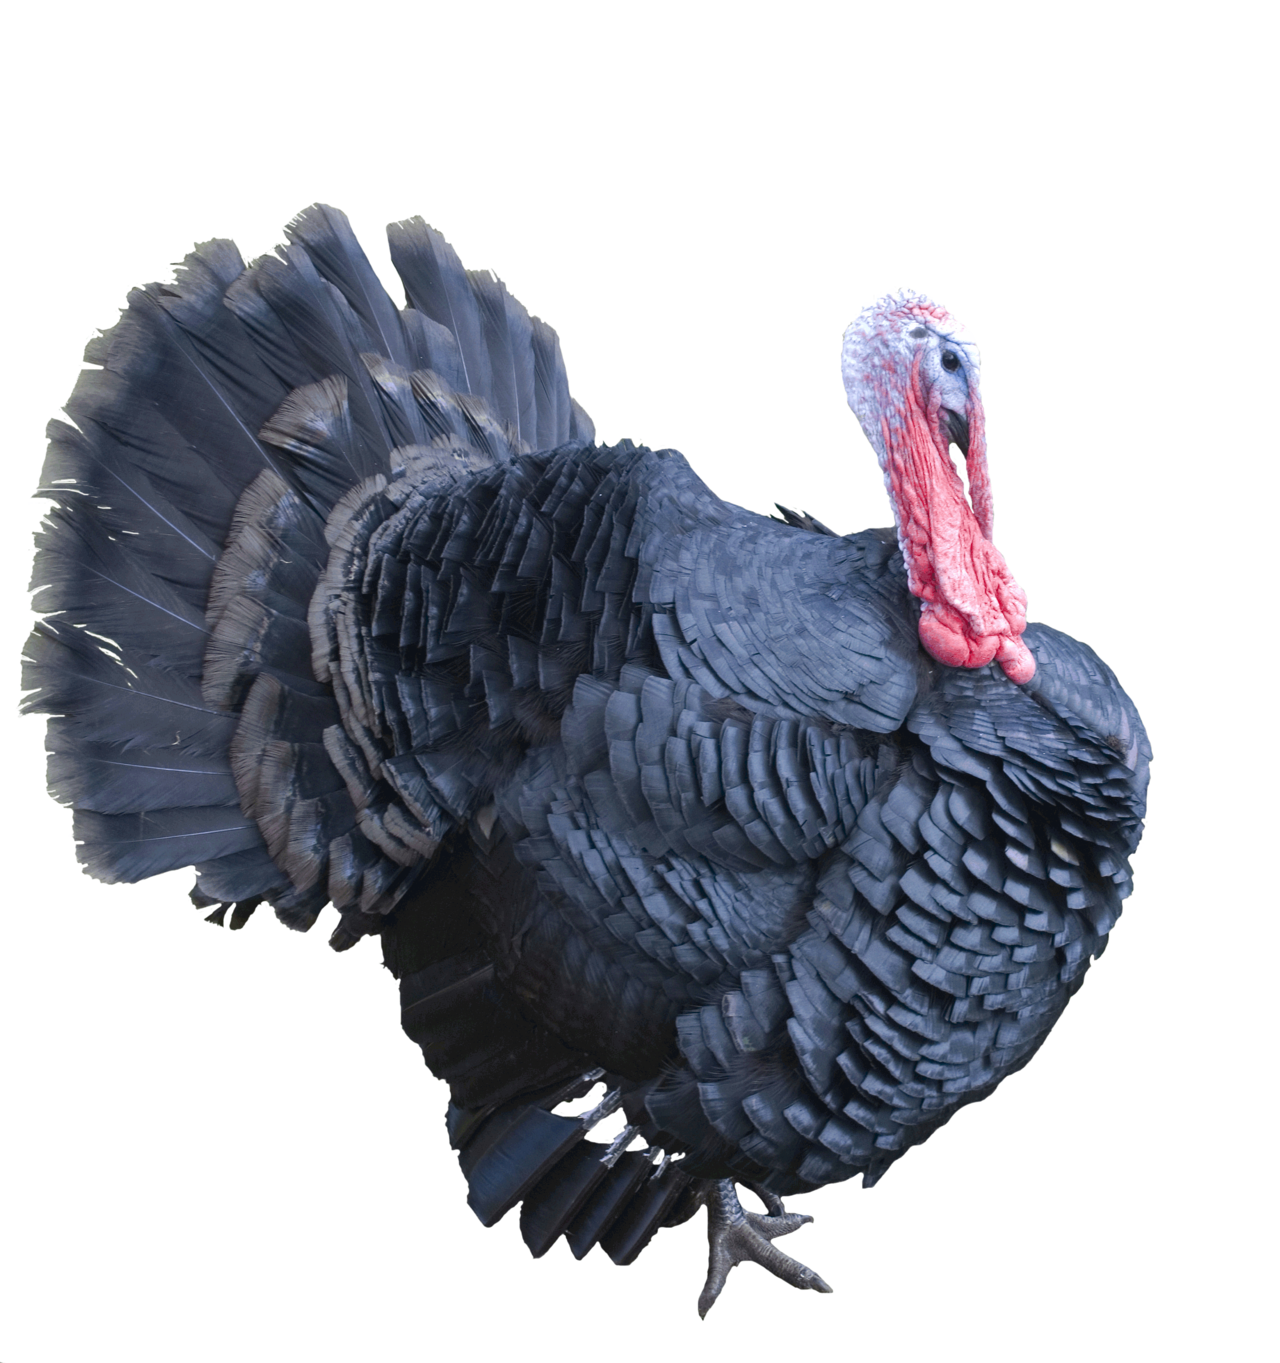 Turkey clipart side view jpg transparent stock Turkey Transparent PNG Pictures - Free Icons and PNG Backgrounds jpg transparent stock